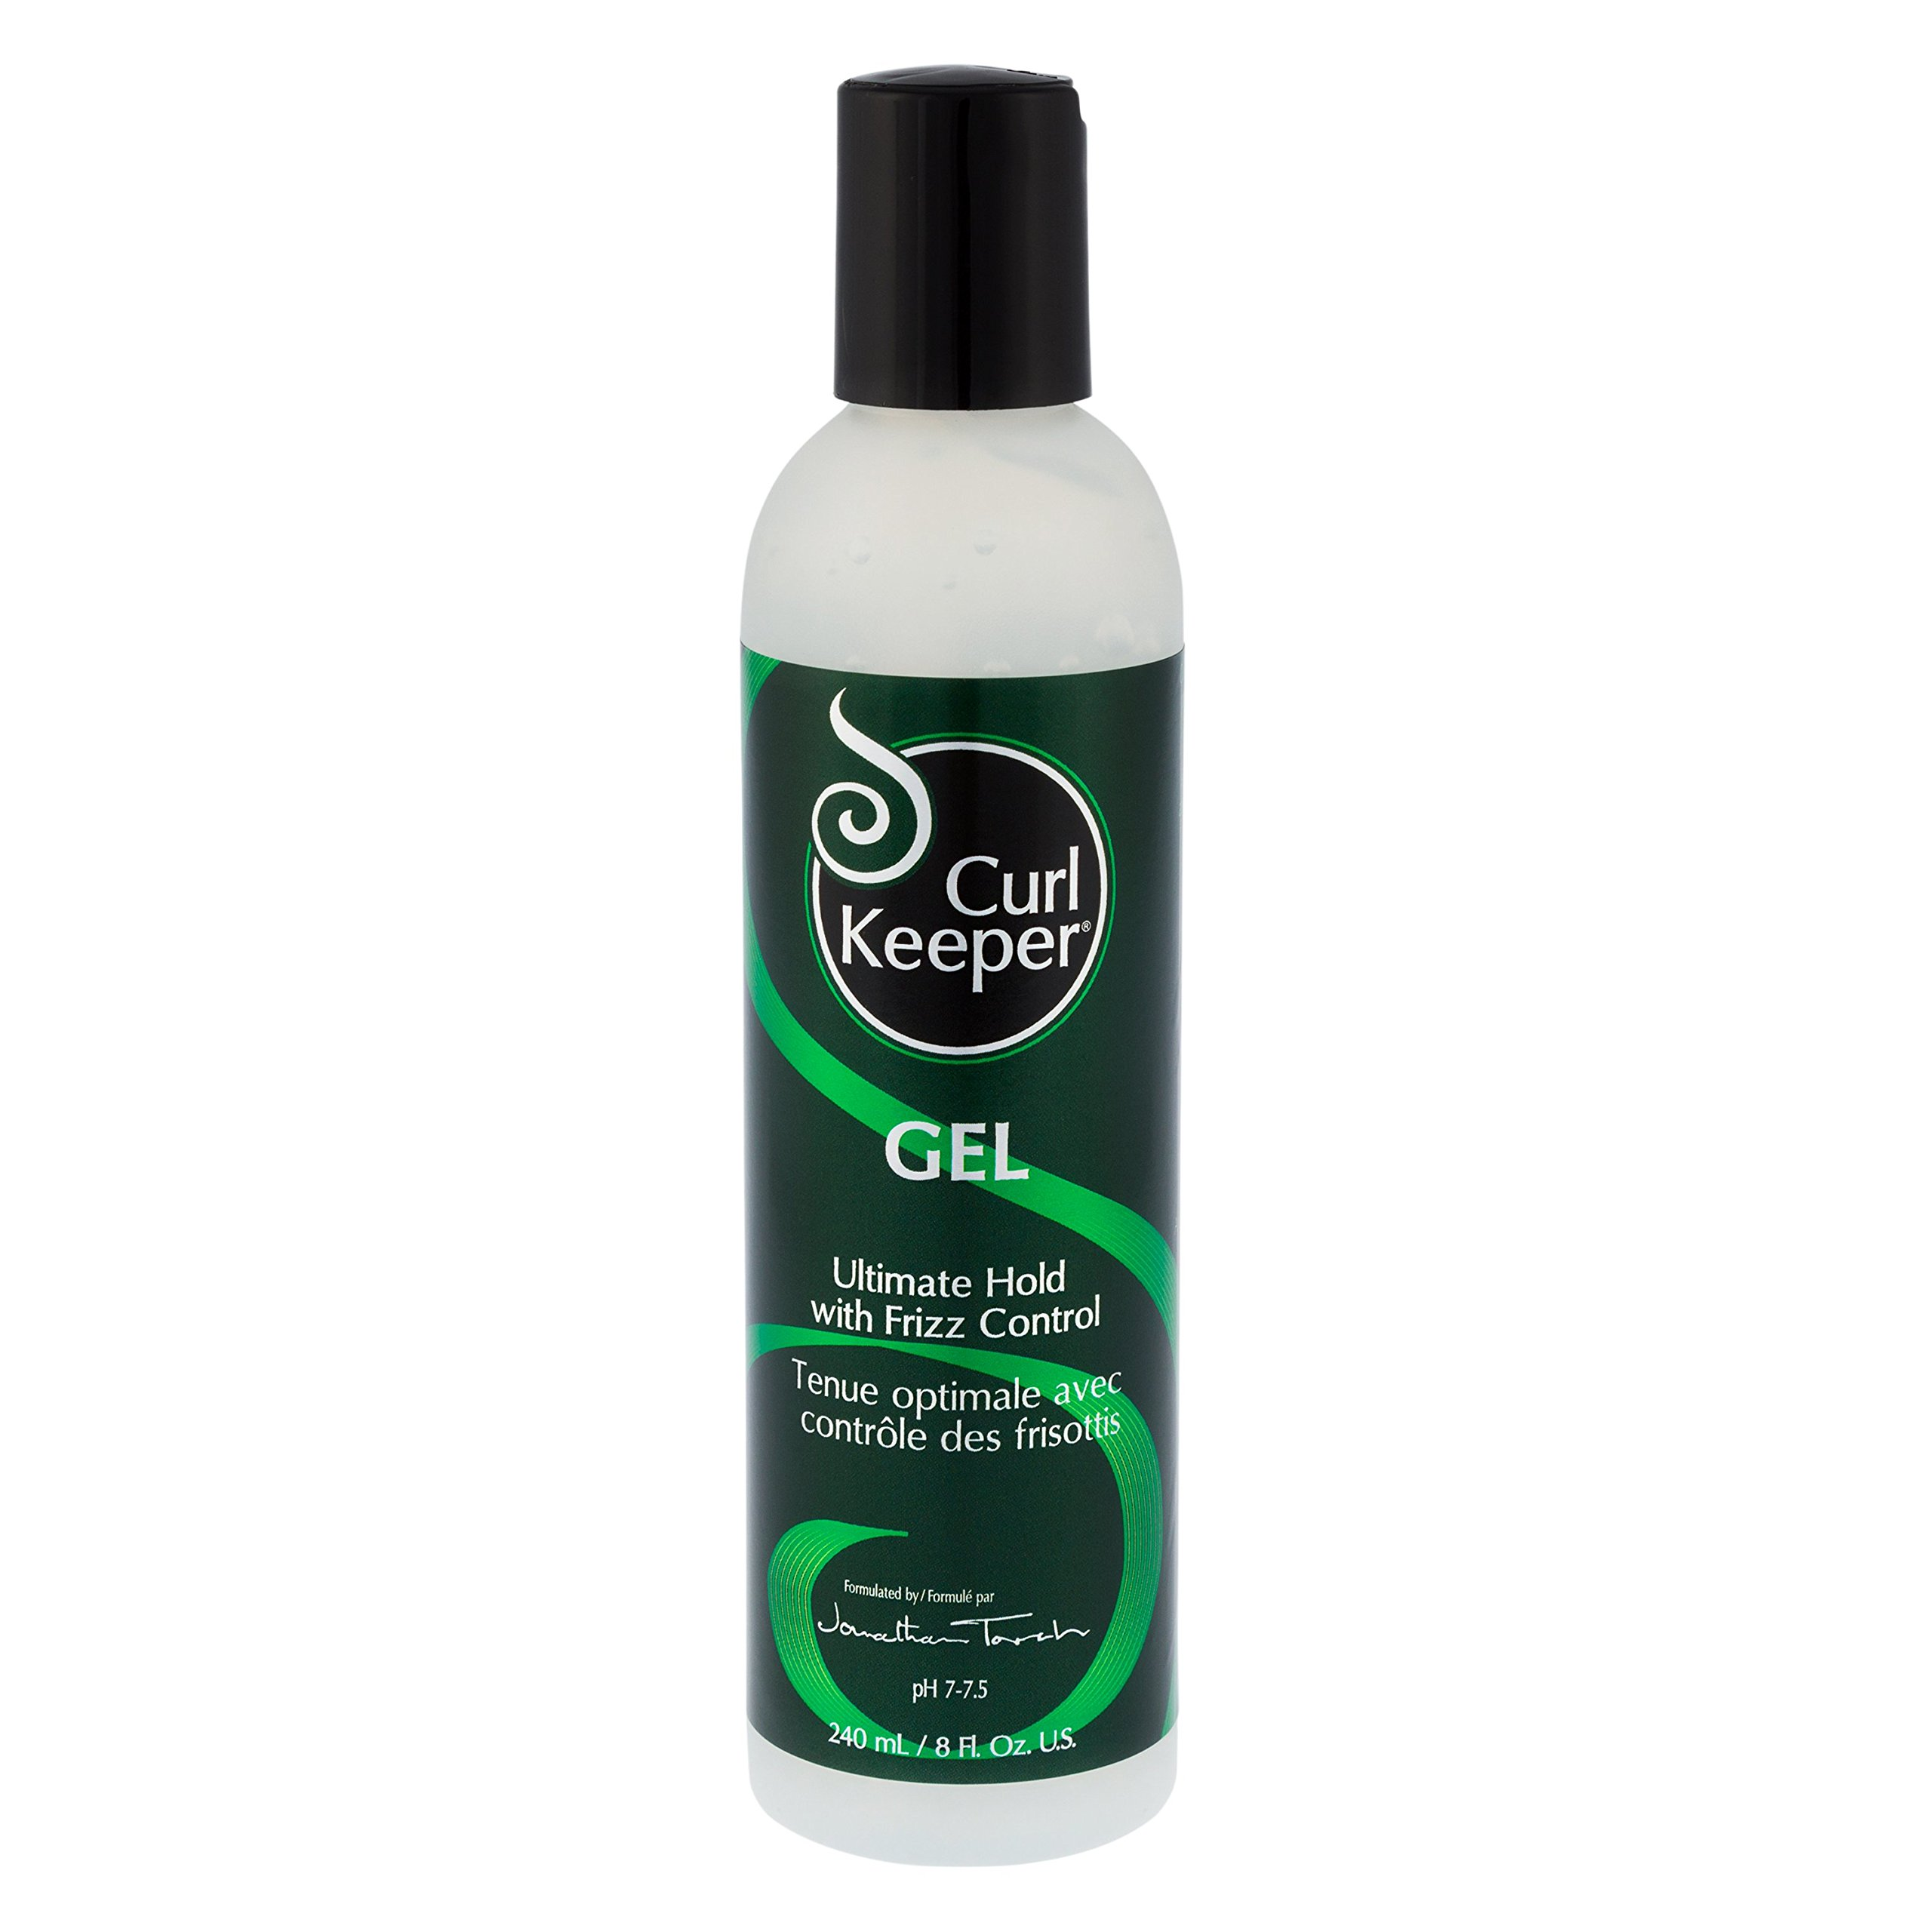 Curly Hair Solutions - Curl Keeper GEL Ultimate Hold with Frizz Control (8 Ounce / 240 Milliliter)